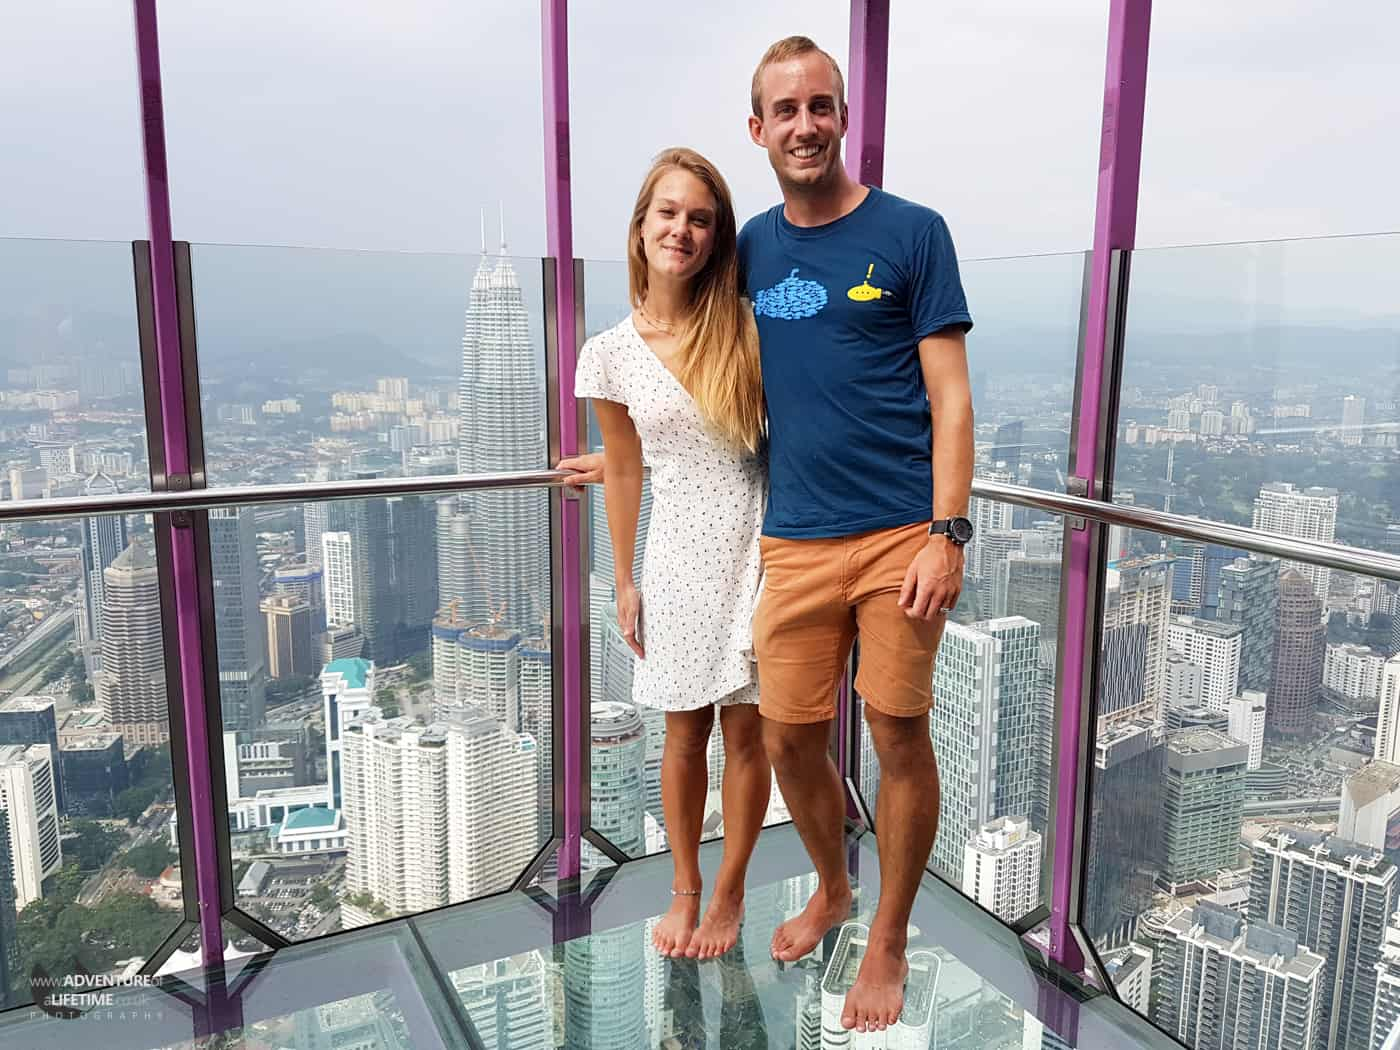 Dora and Michael at the top of the KL Tower